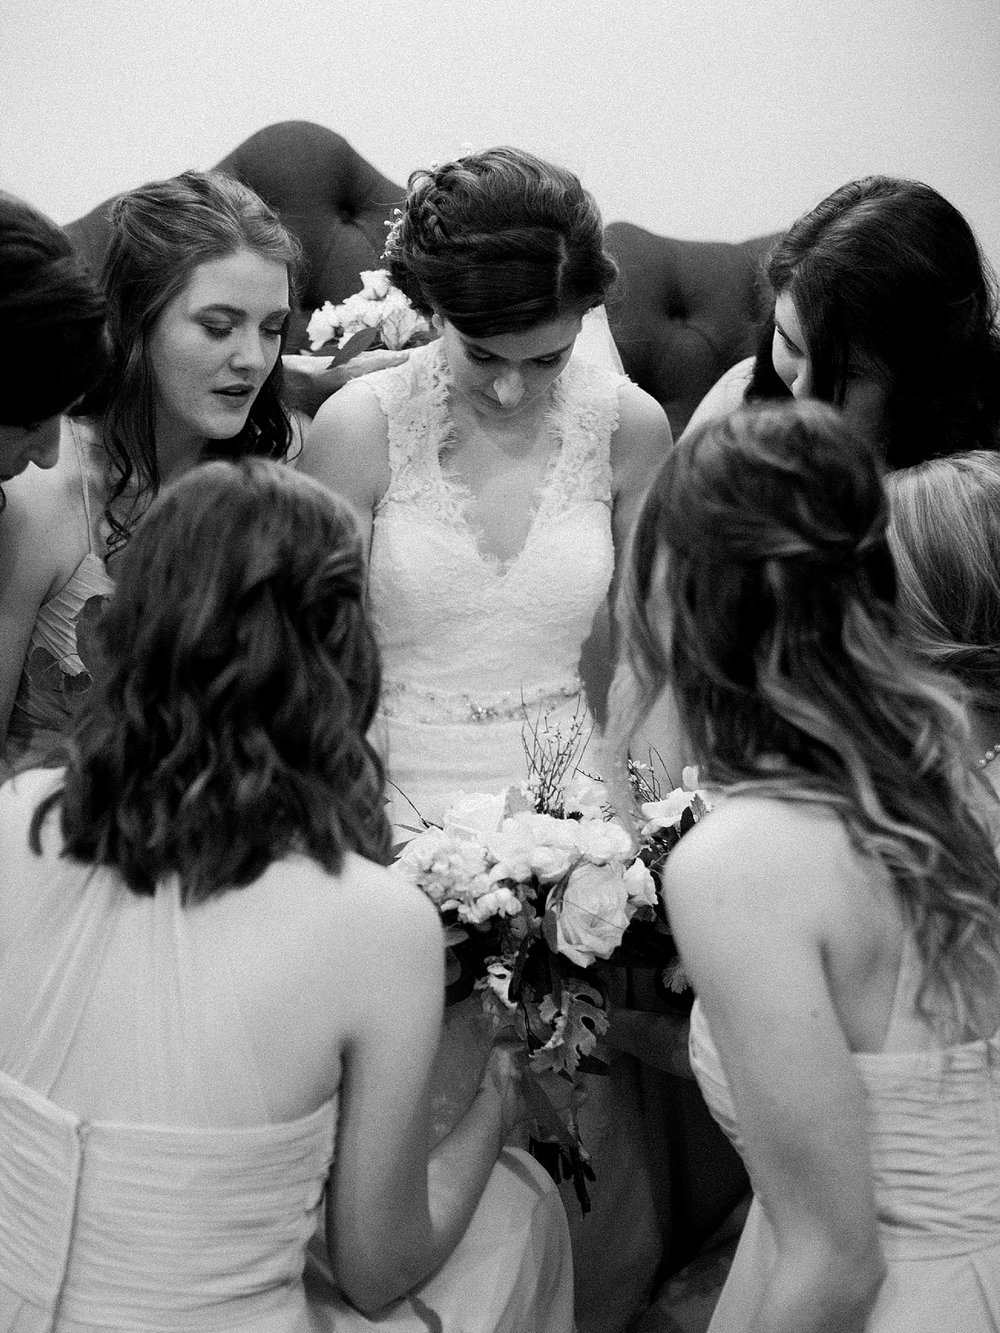 The Engine Room Atlanta Wedding Photographer Christina Pugh 21.jpg